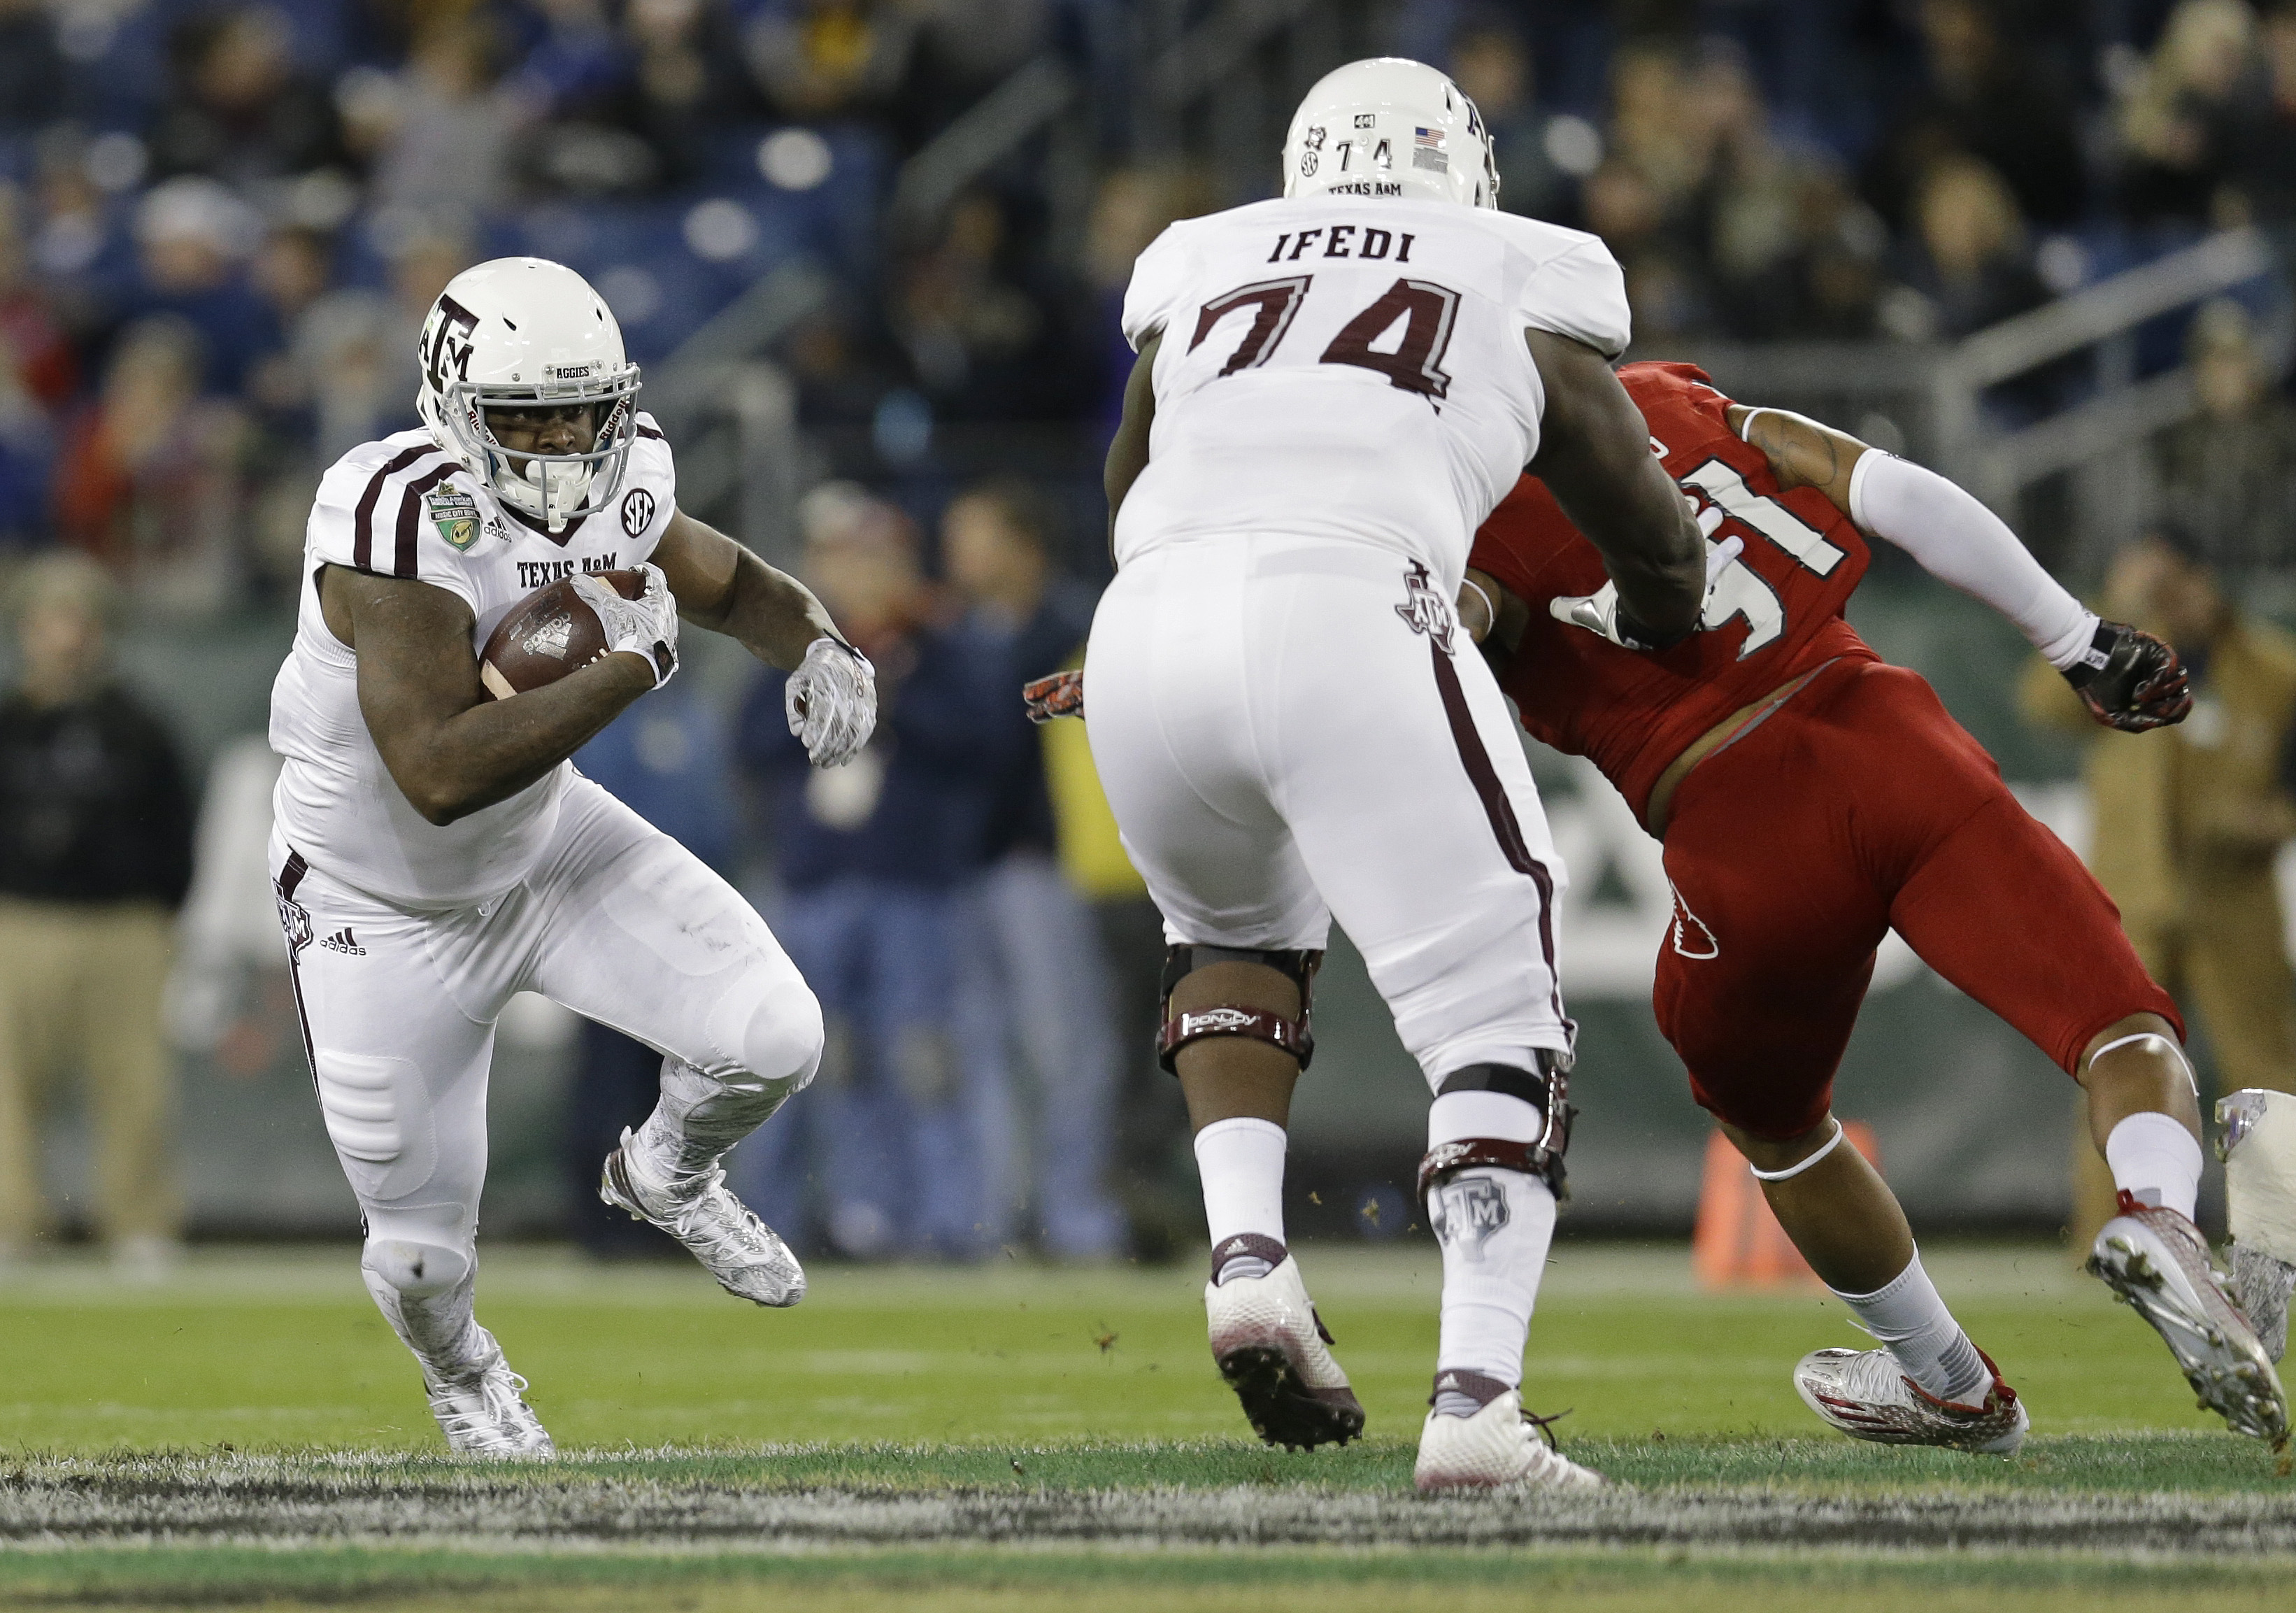 Texas A&M running back Tra Carson, left, follows a block by offensive lineman Germain Ifedi (74) on Louisville linebacker Trevon Young (91) in the first half of the Music City Bowl NCAA college football game Wednesday, Dec. 30, 2015, in Nashville, Tenn. (